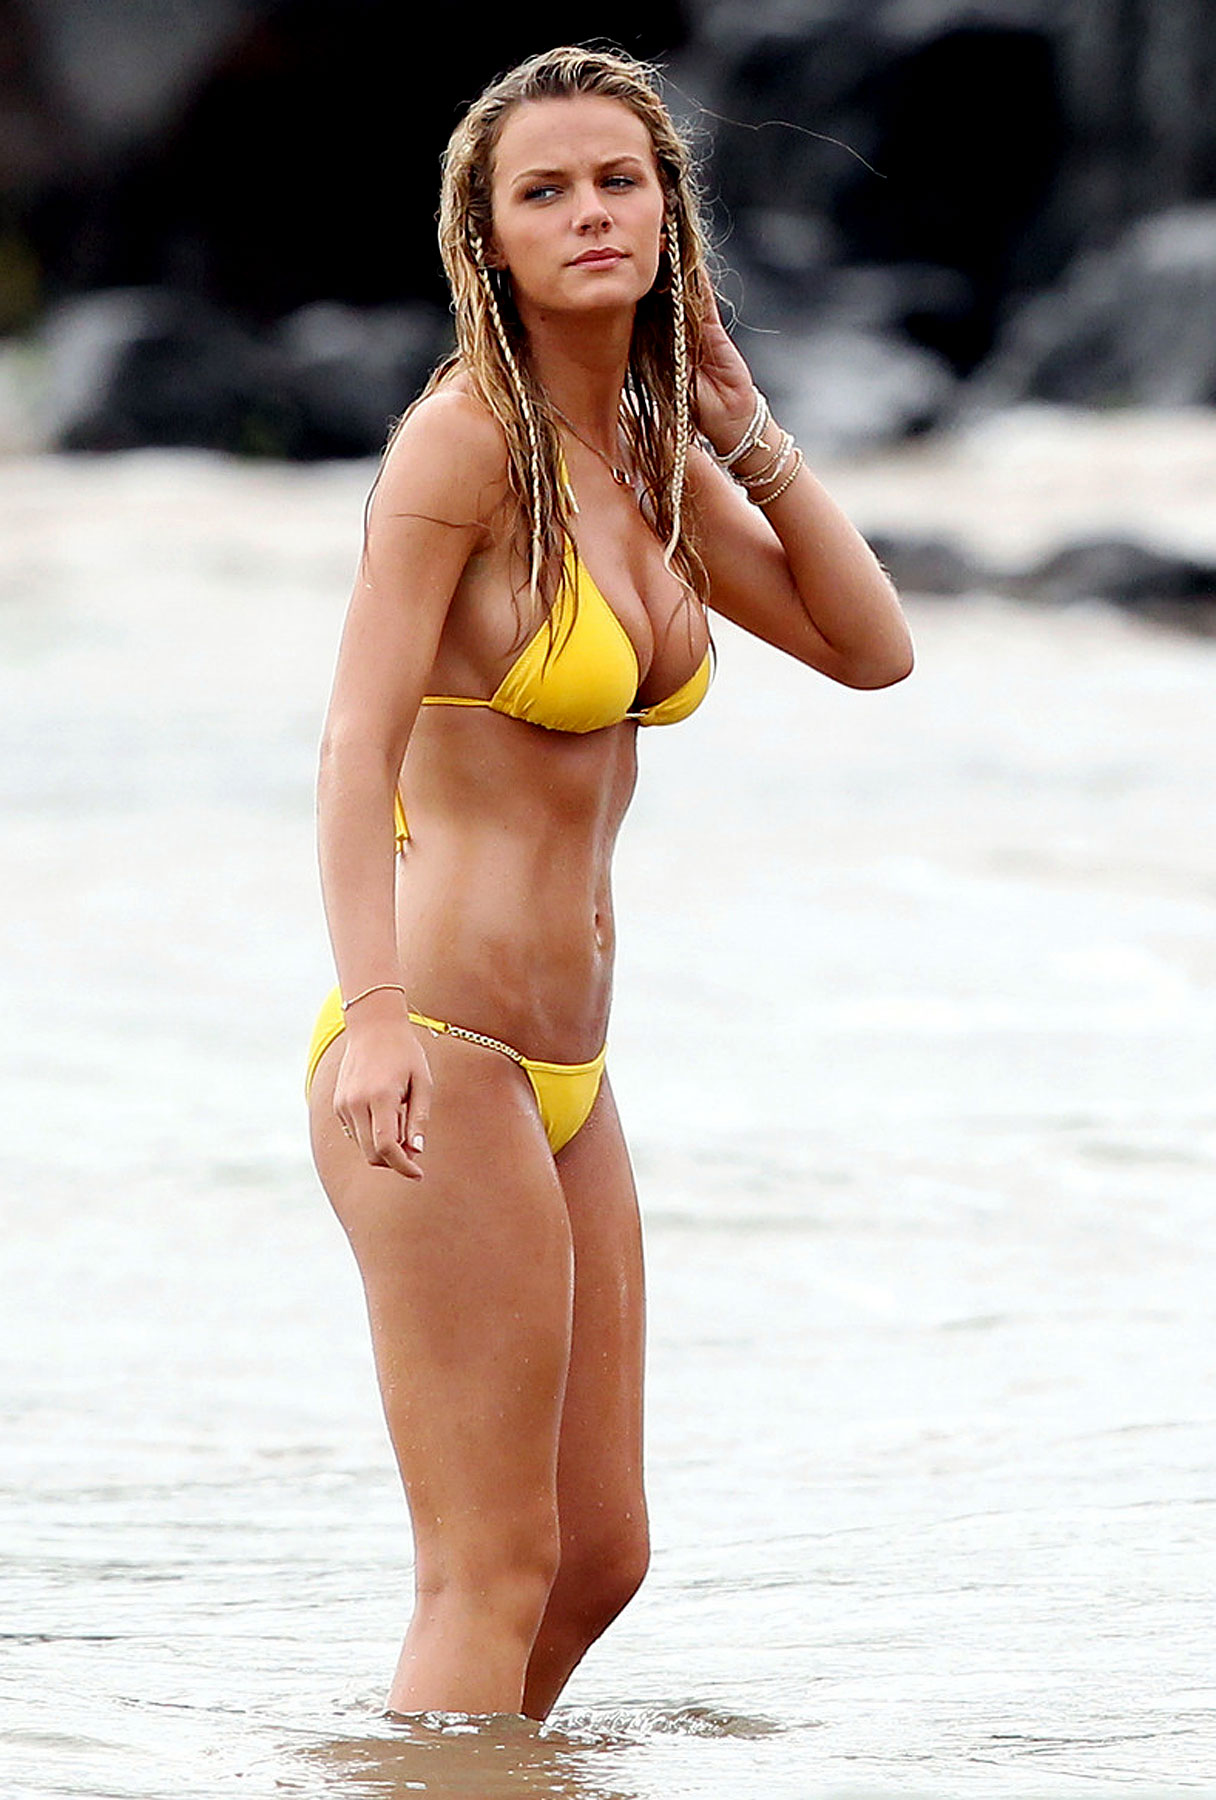 Brooklyn Decker Leads Top 10 Hot Celeb Bikini Bodies List (PHOTOS)